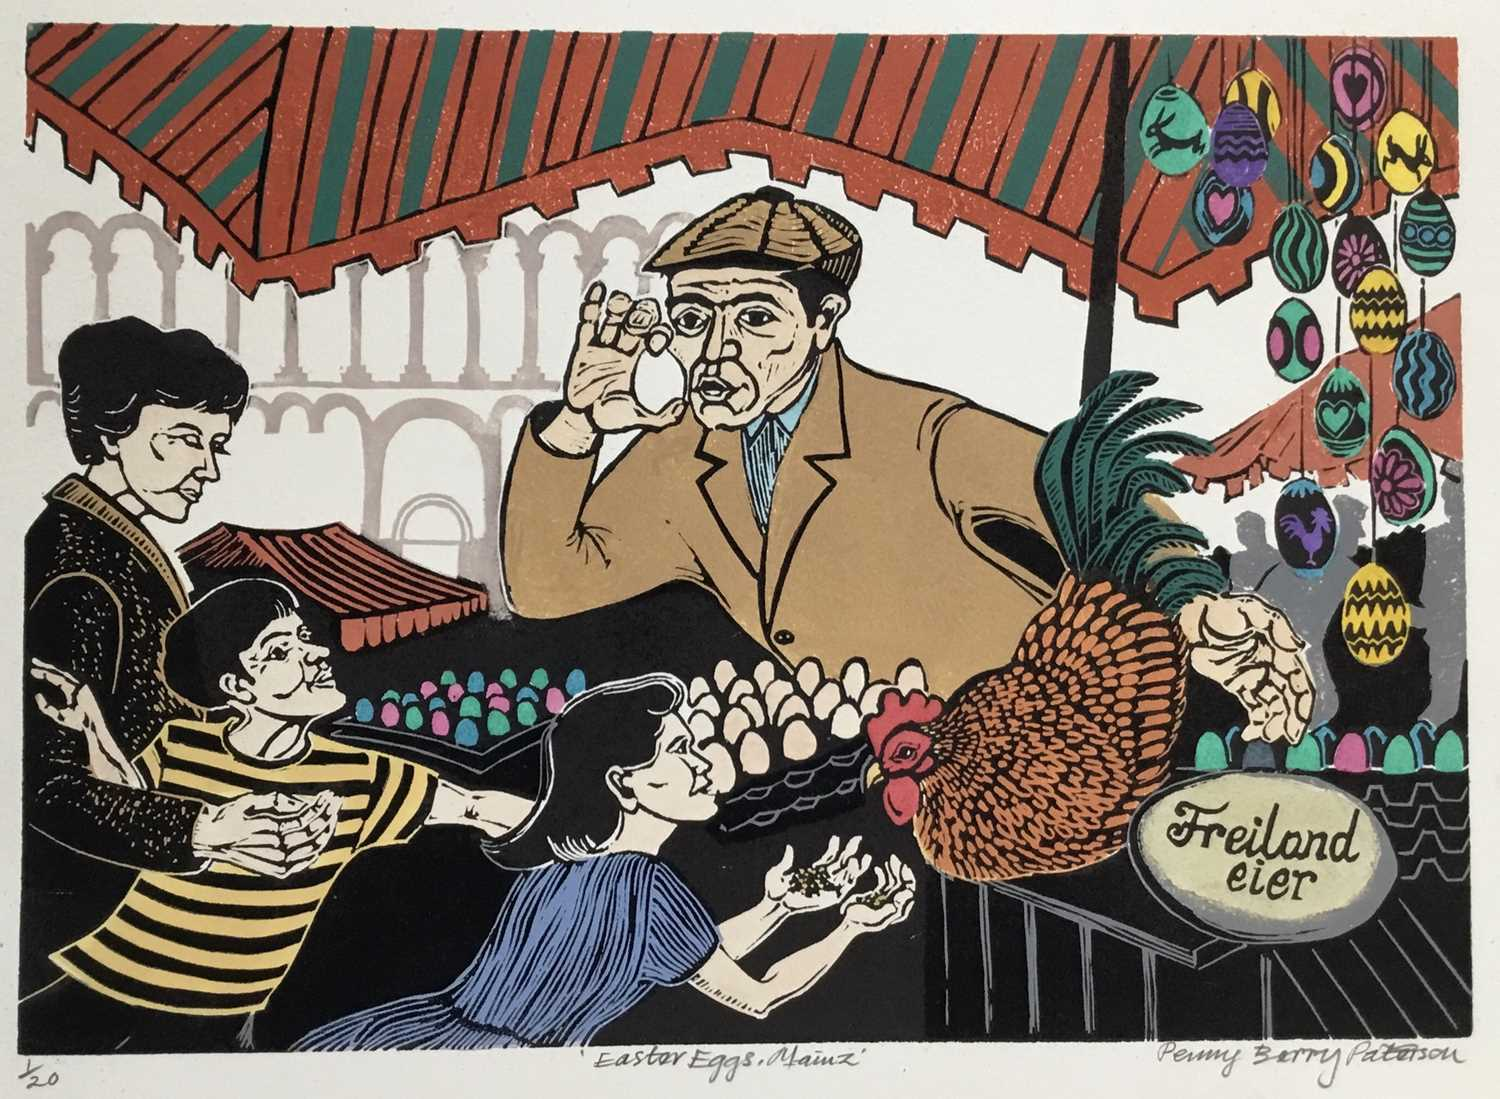 Penny Berry Paterson (1941-2021) colour linocut print, Easter eggs, Mainz, signed and numbered 1/20,